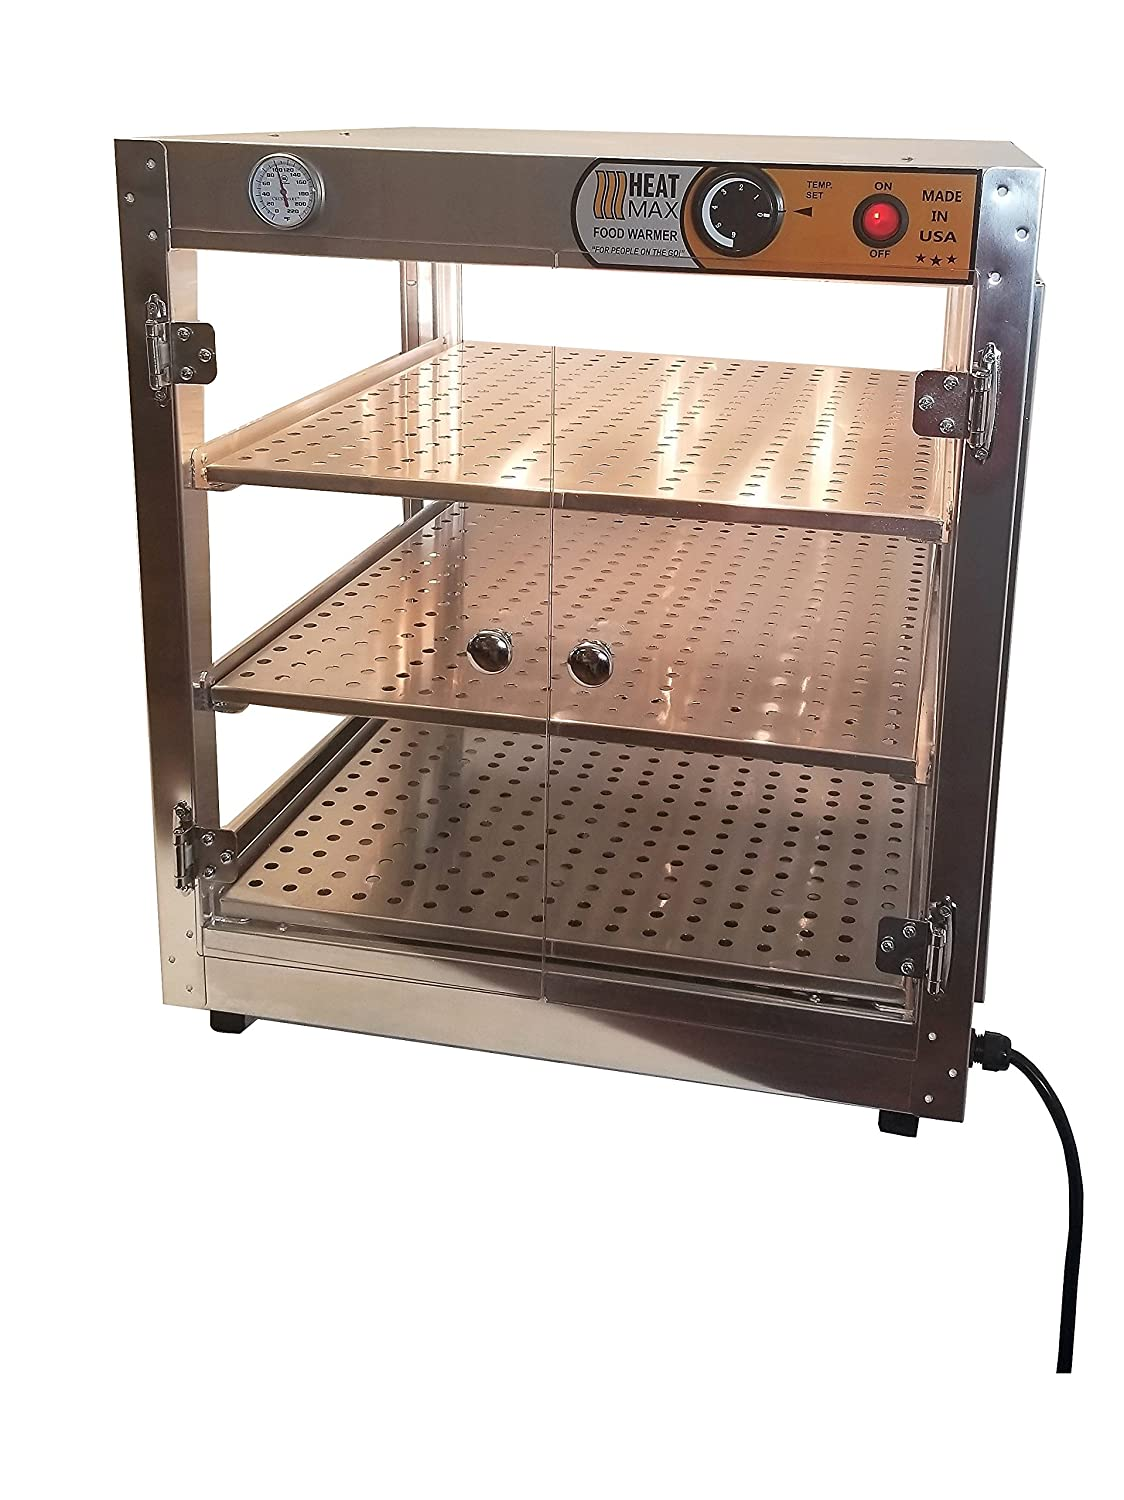 HeatMax Commercial Popular products 202024 Countertop Pizza Food Warmer Spring new work one after another and Displ